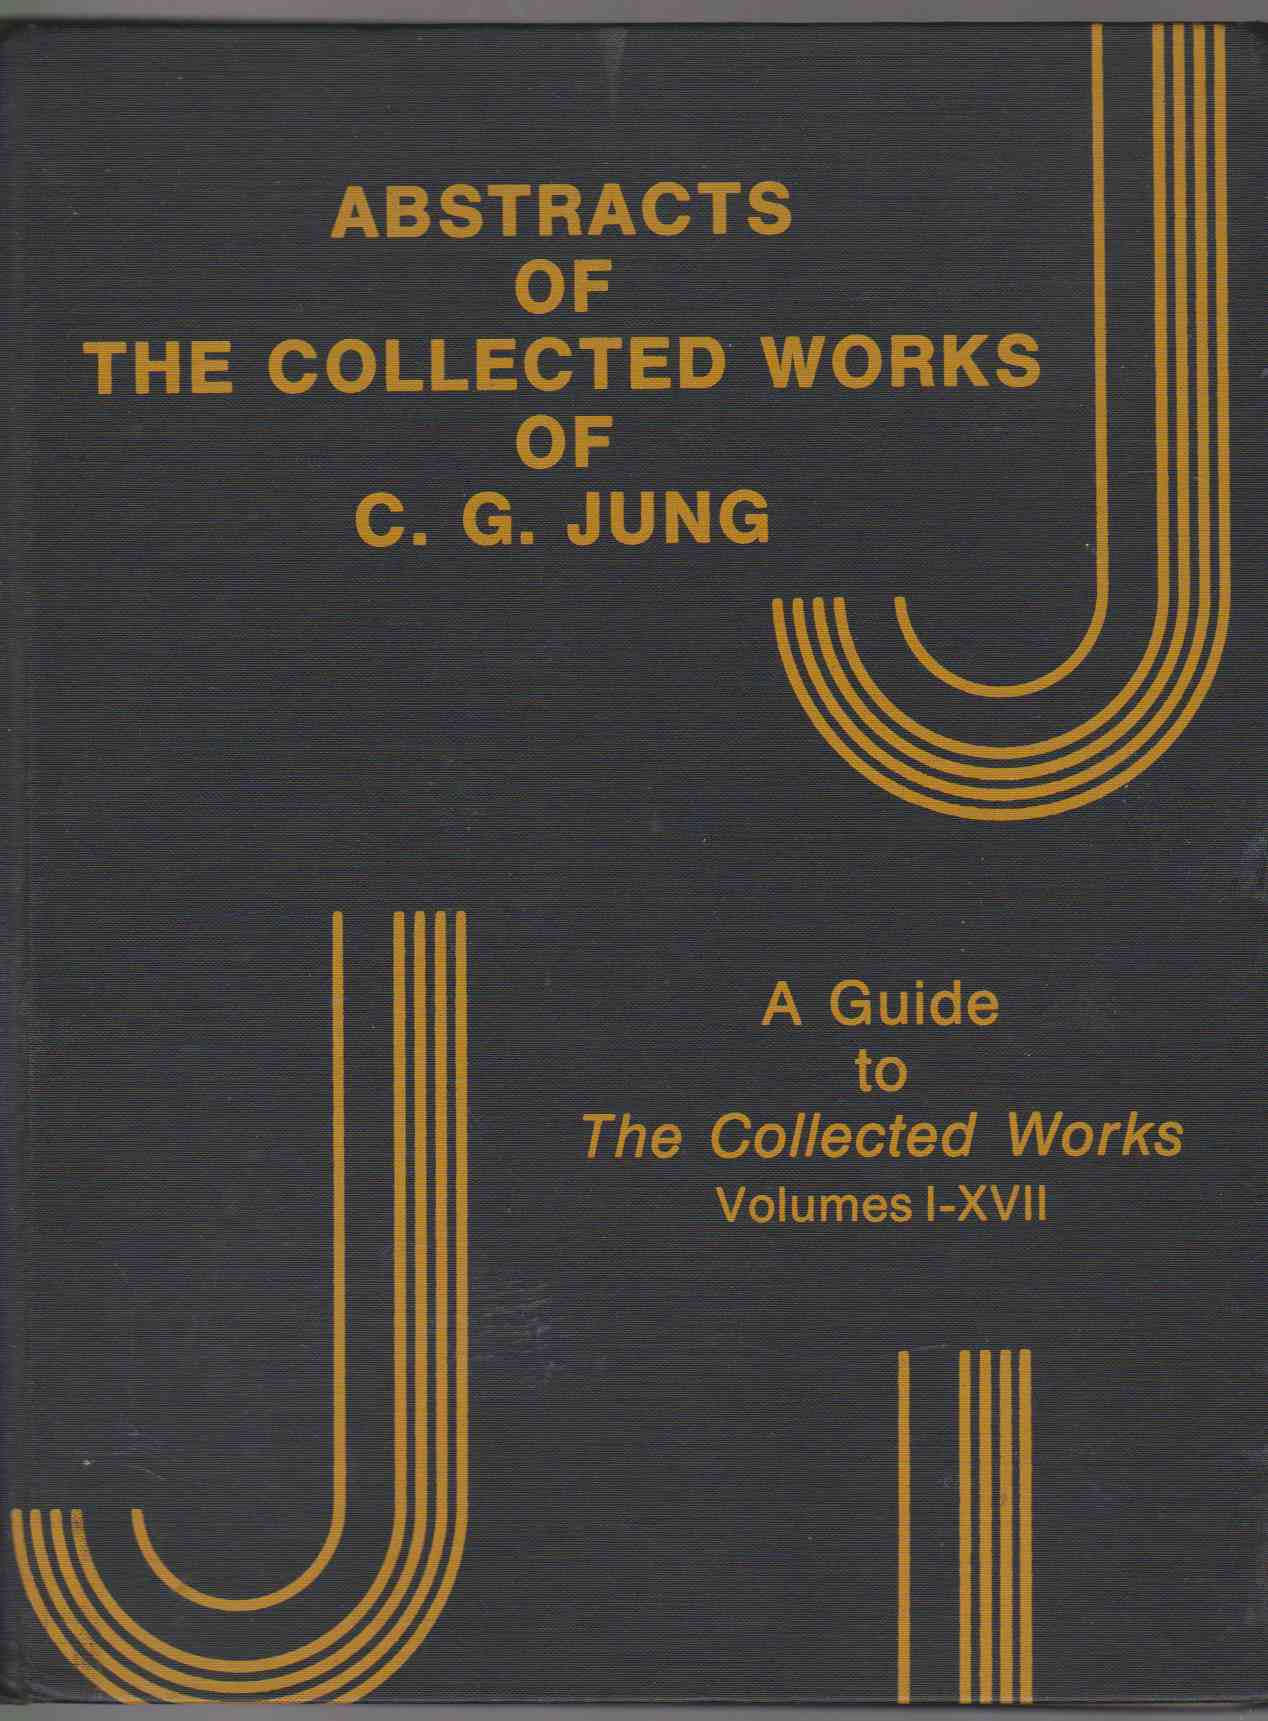 Image for ABSTRACTS OF COLLECTED WORKS OF C. G. JUNG A GUIDE TO THE COLLECTED WORKS VOLUMES I-XVII